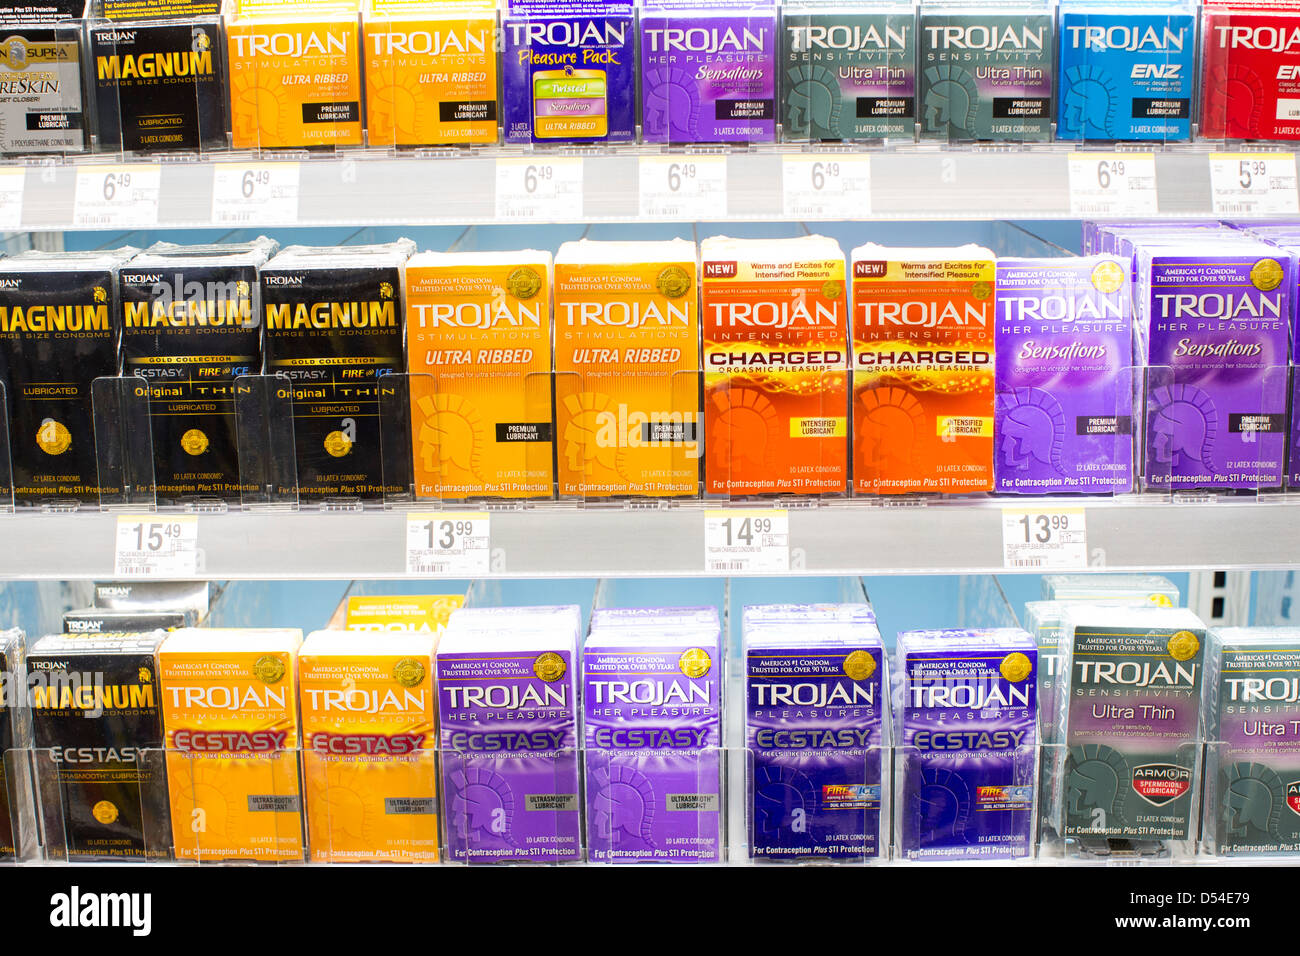 Trojan condom products on display at a Walgreens Flagship store.  - Stock Image